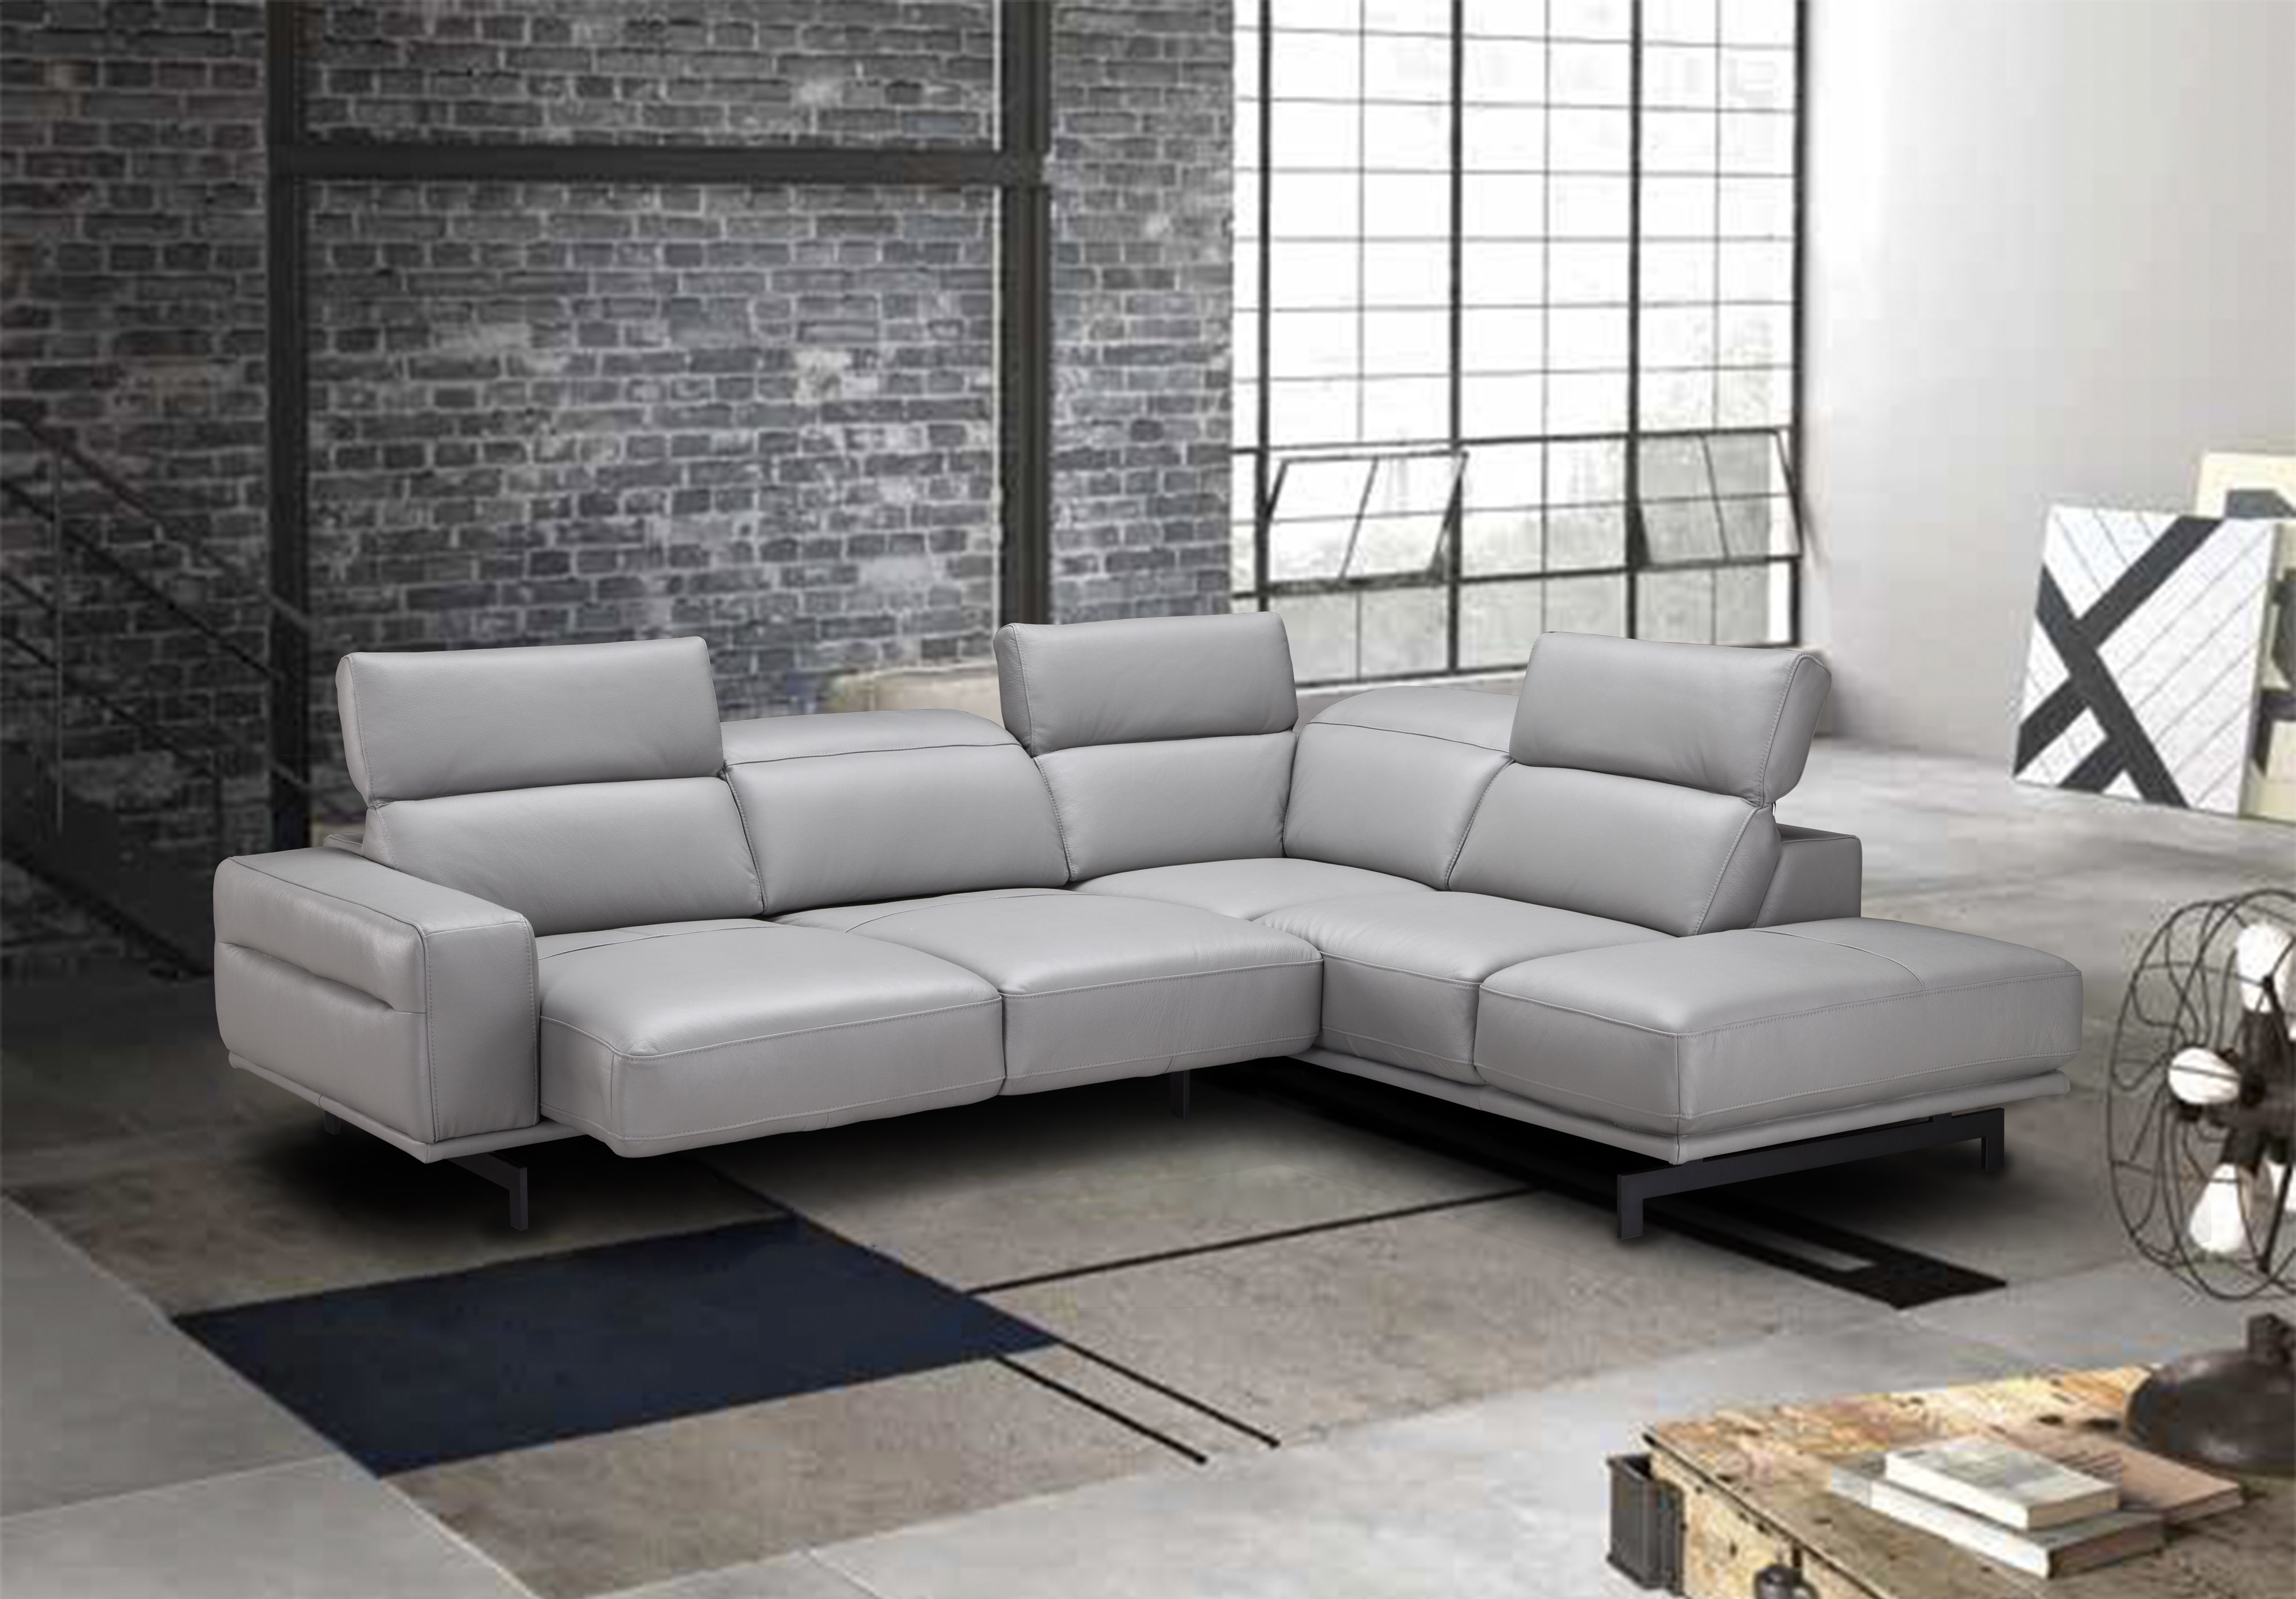 Sofas For Sale Houston Adjustable Advanced Italian Top Grain Leather Sectional